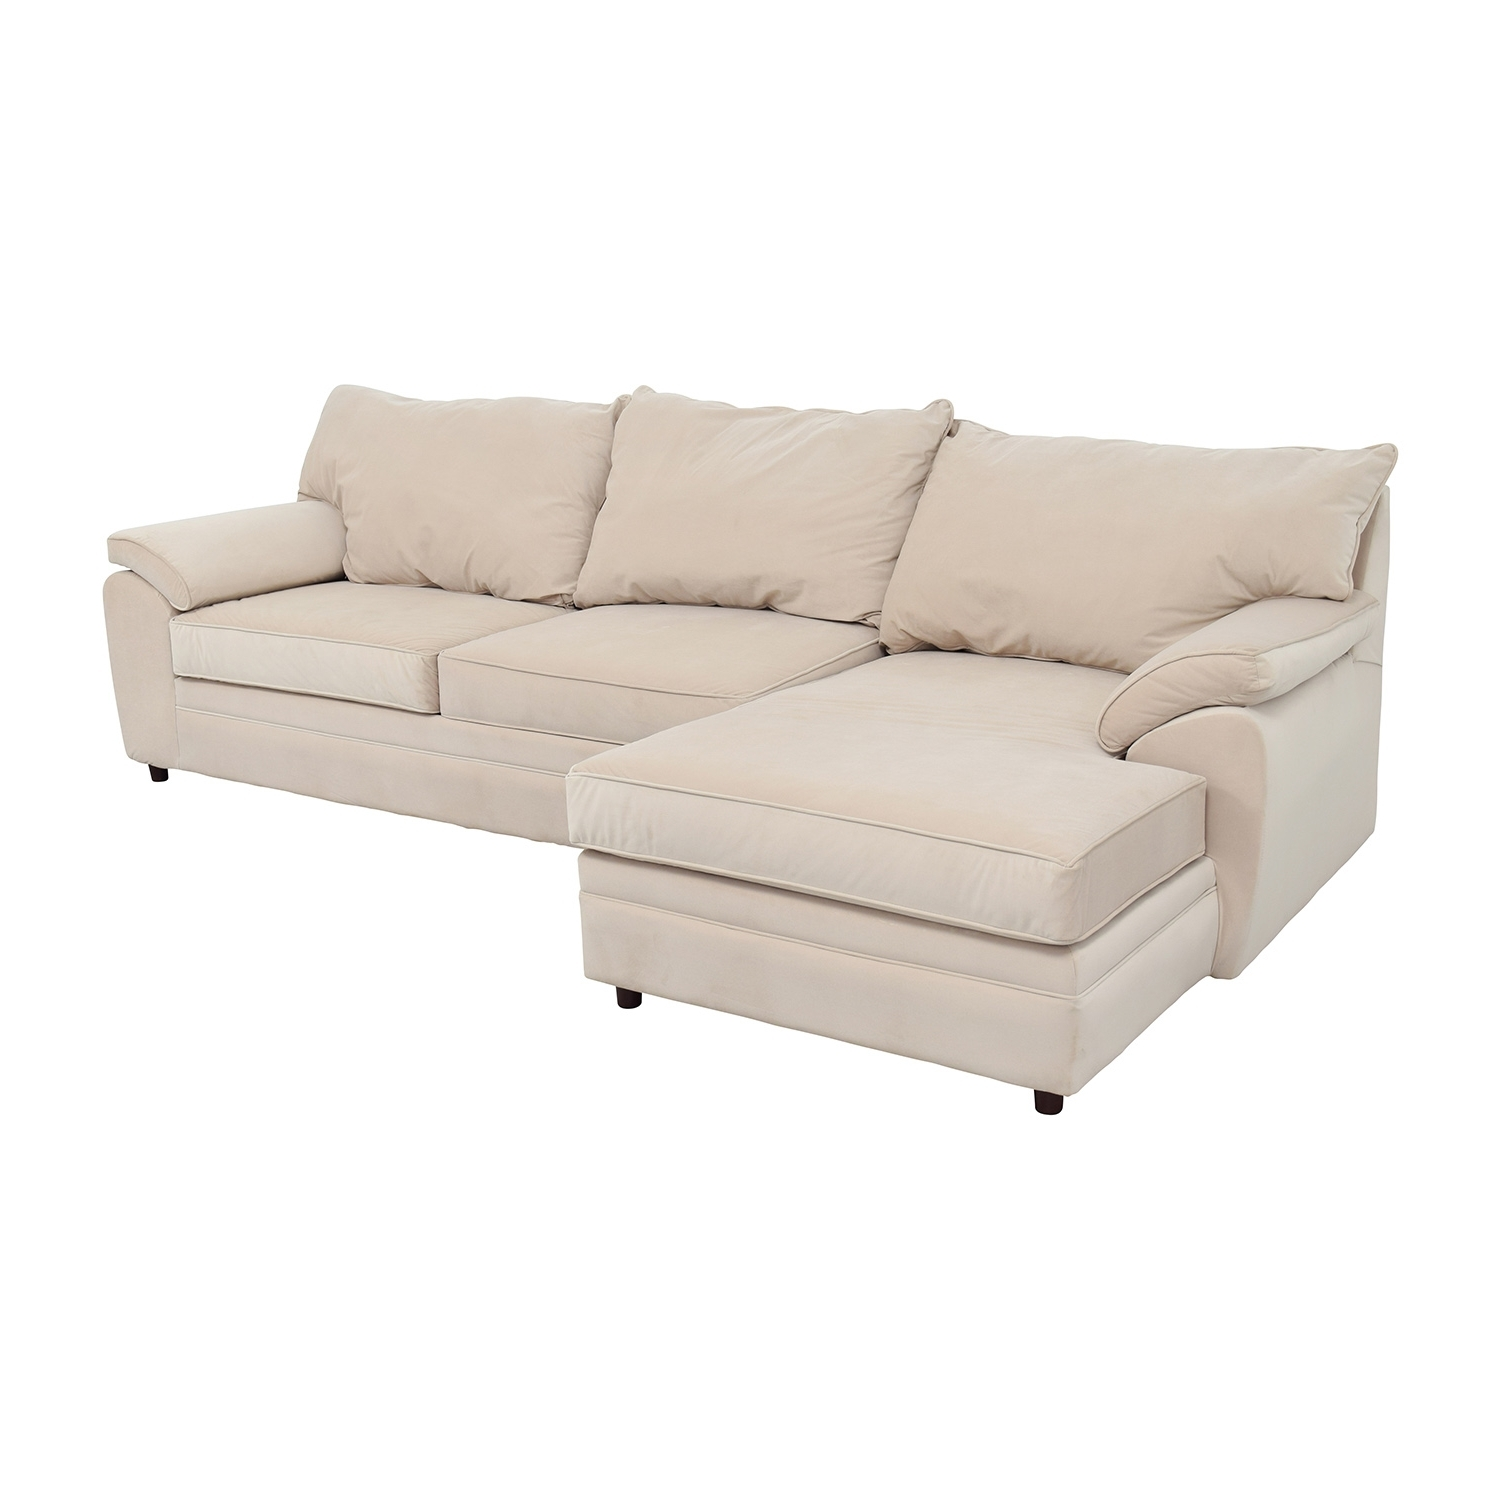 [%33% Off – Bob's Furniture Bob Furniture Off White Right Chaise With Most Recent Bobs Furniture Chaises|Bobs Furniture Chaises With Most Current 33% Off – Bob's Furniture Bob Furniture Off White Right Chaise|Preferred Bobs Furniture Chaises Intended For 33% Off – Bob's Furniture Bob Furniture Off White Right Chaise|Preferred 33% Off – Bob's Furniture Bob Furniture Off White Right Chaise Intended For Bobs Furniture Chaises%] (View 2 of 15)